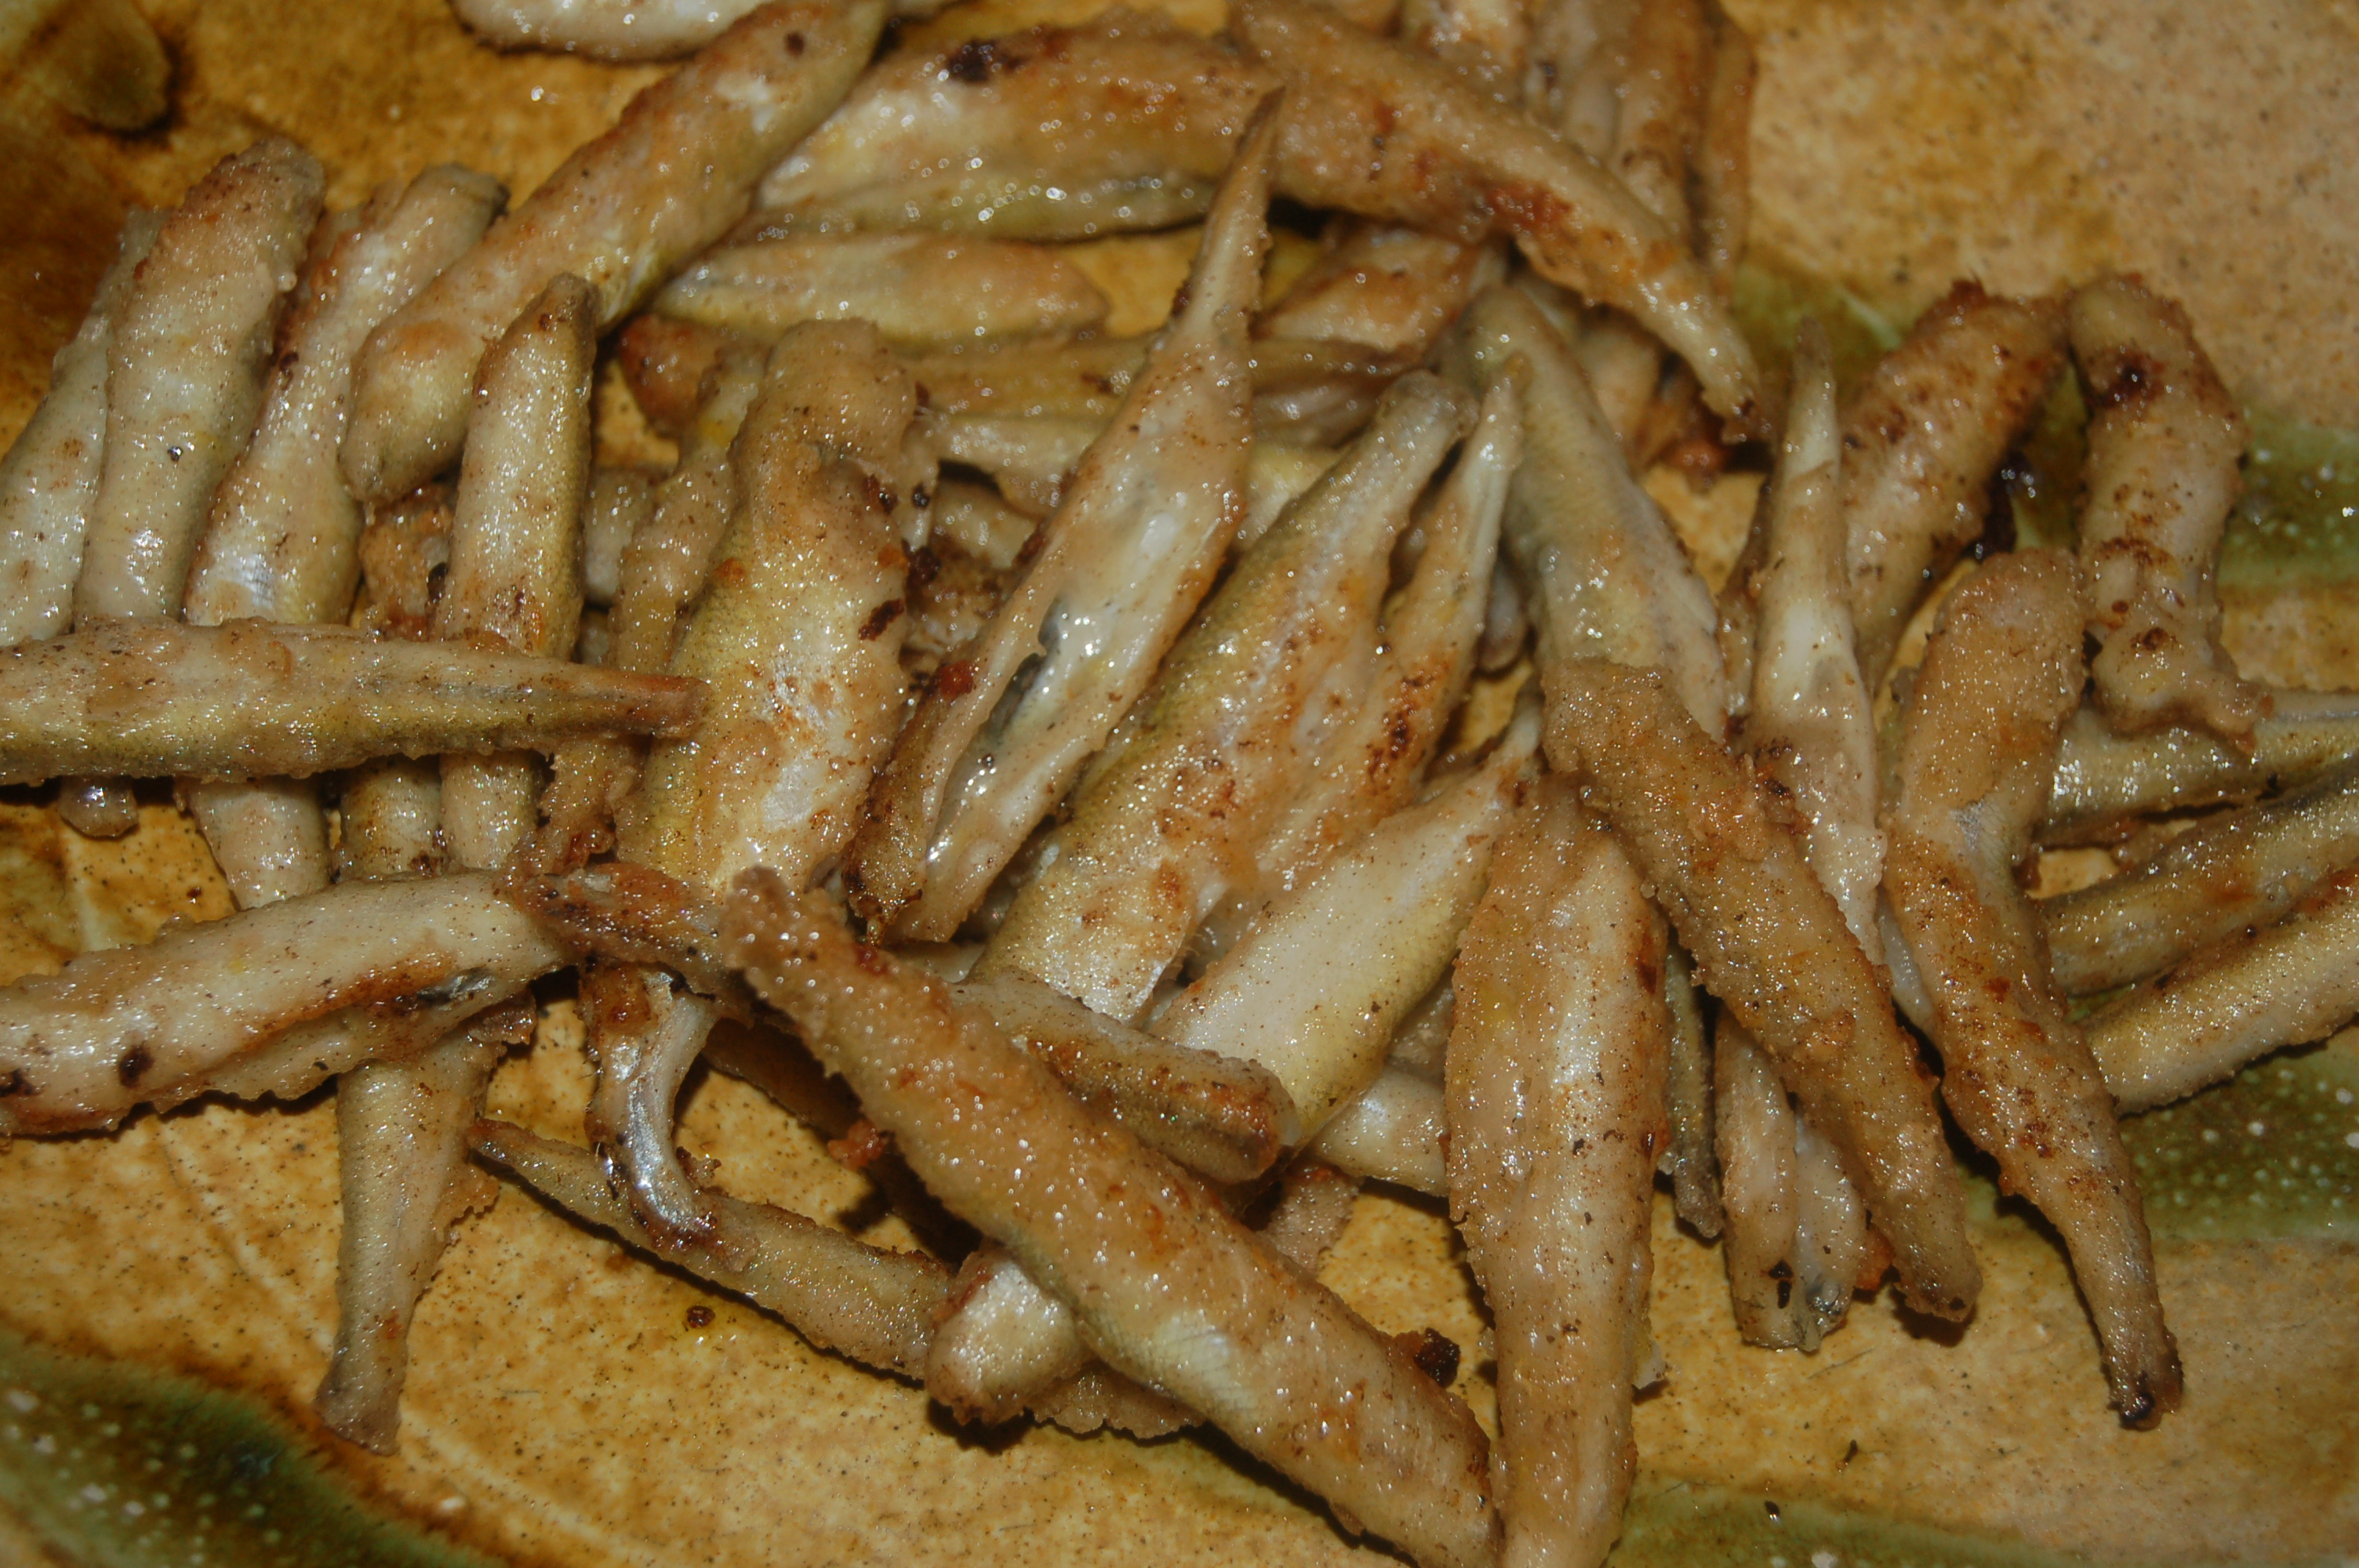 Crispy Lemon Fried Smelts with Carrot And Parsnip Fries (serves 4)